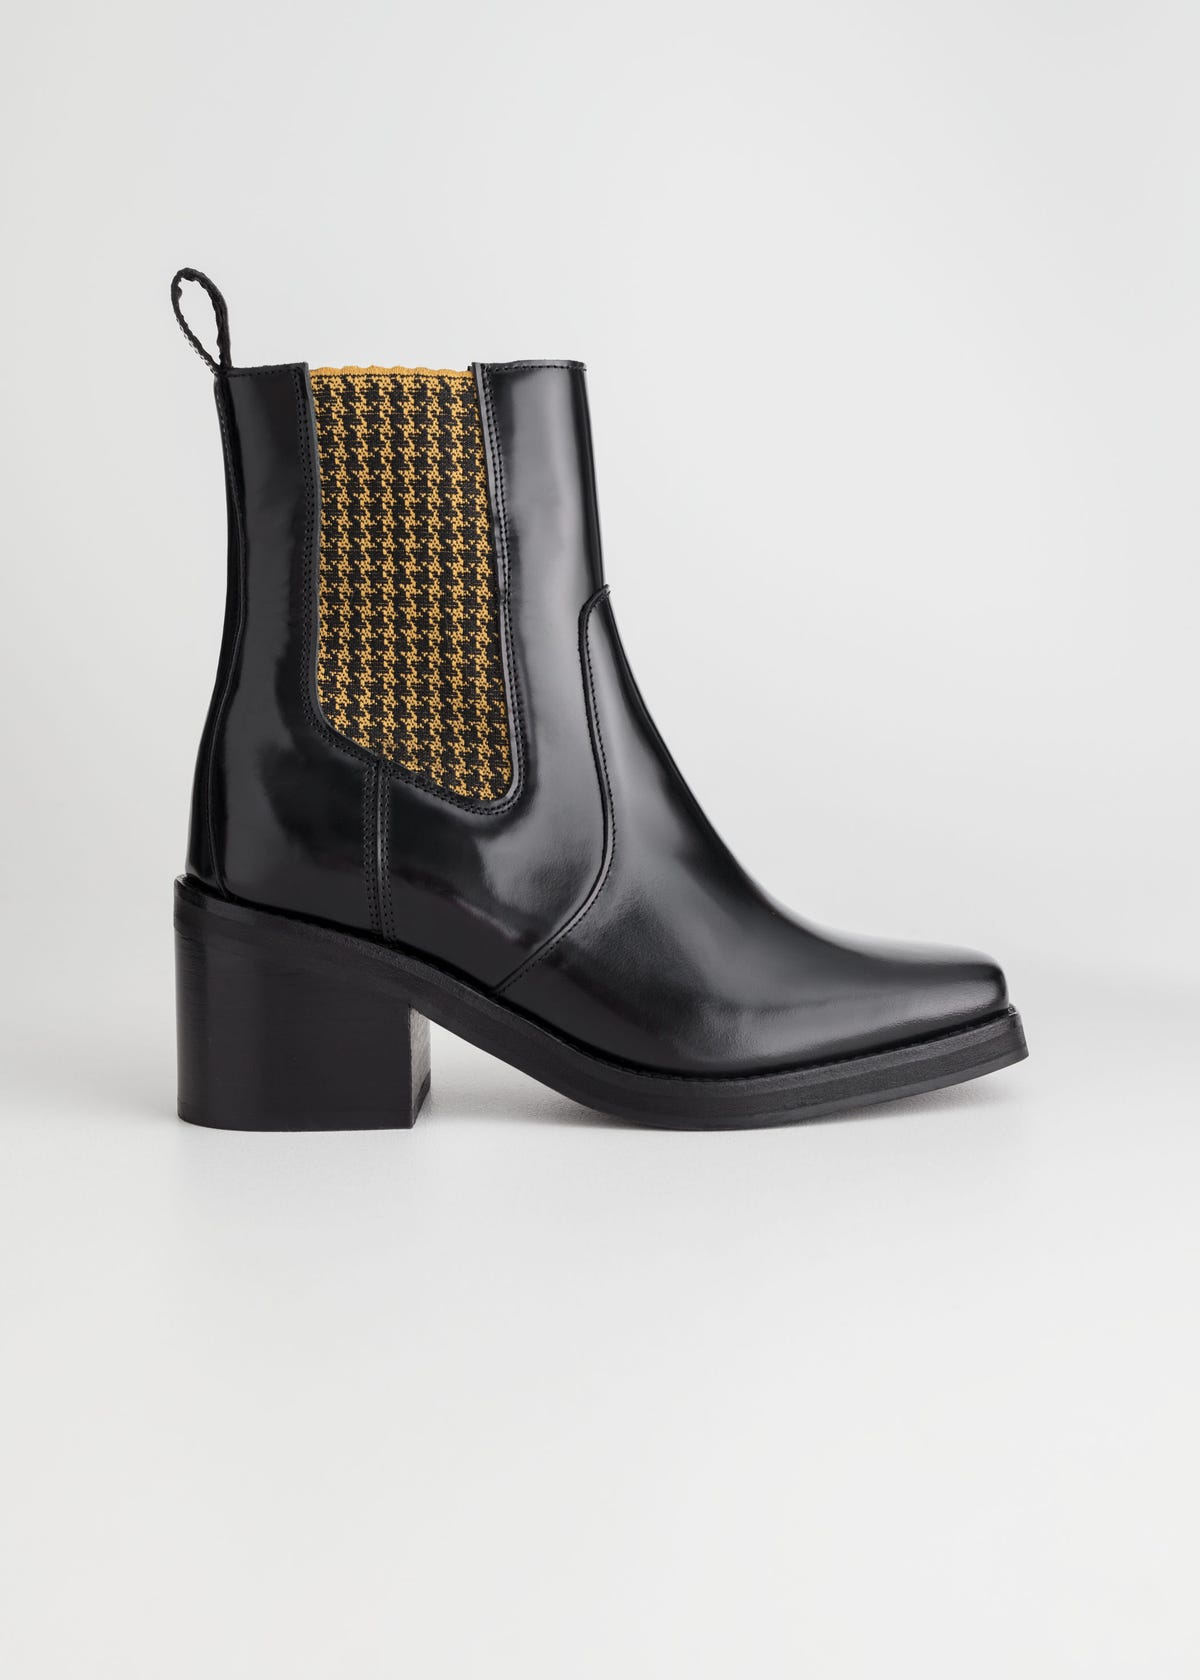 5150fe80fbe Womens Boots Trends - Best Winter 2019 Boot Styles